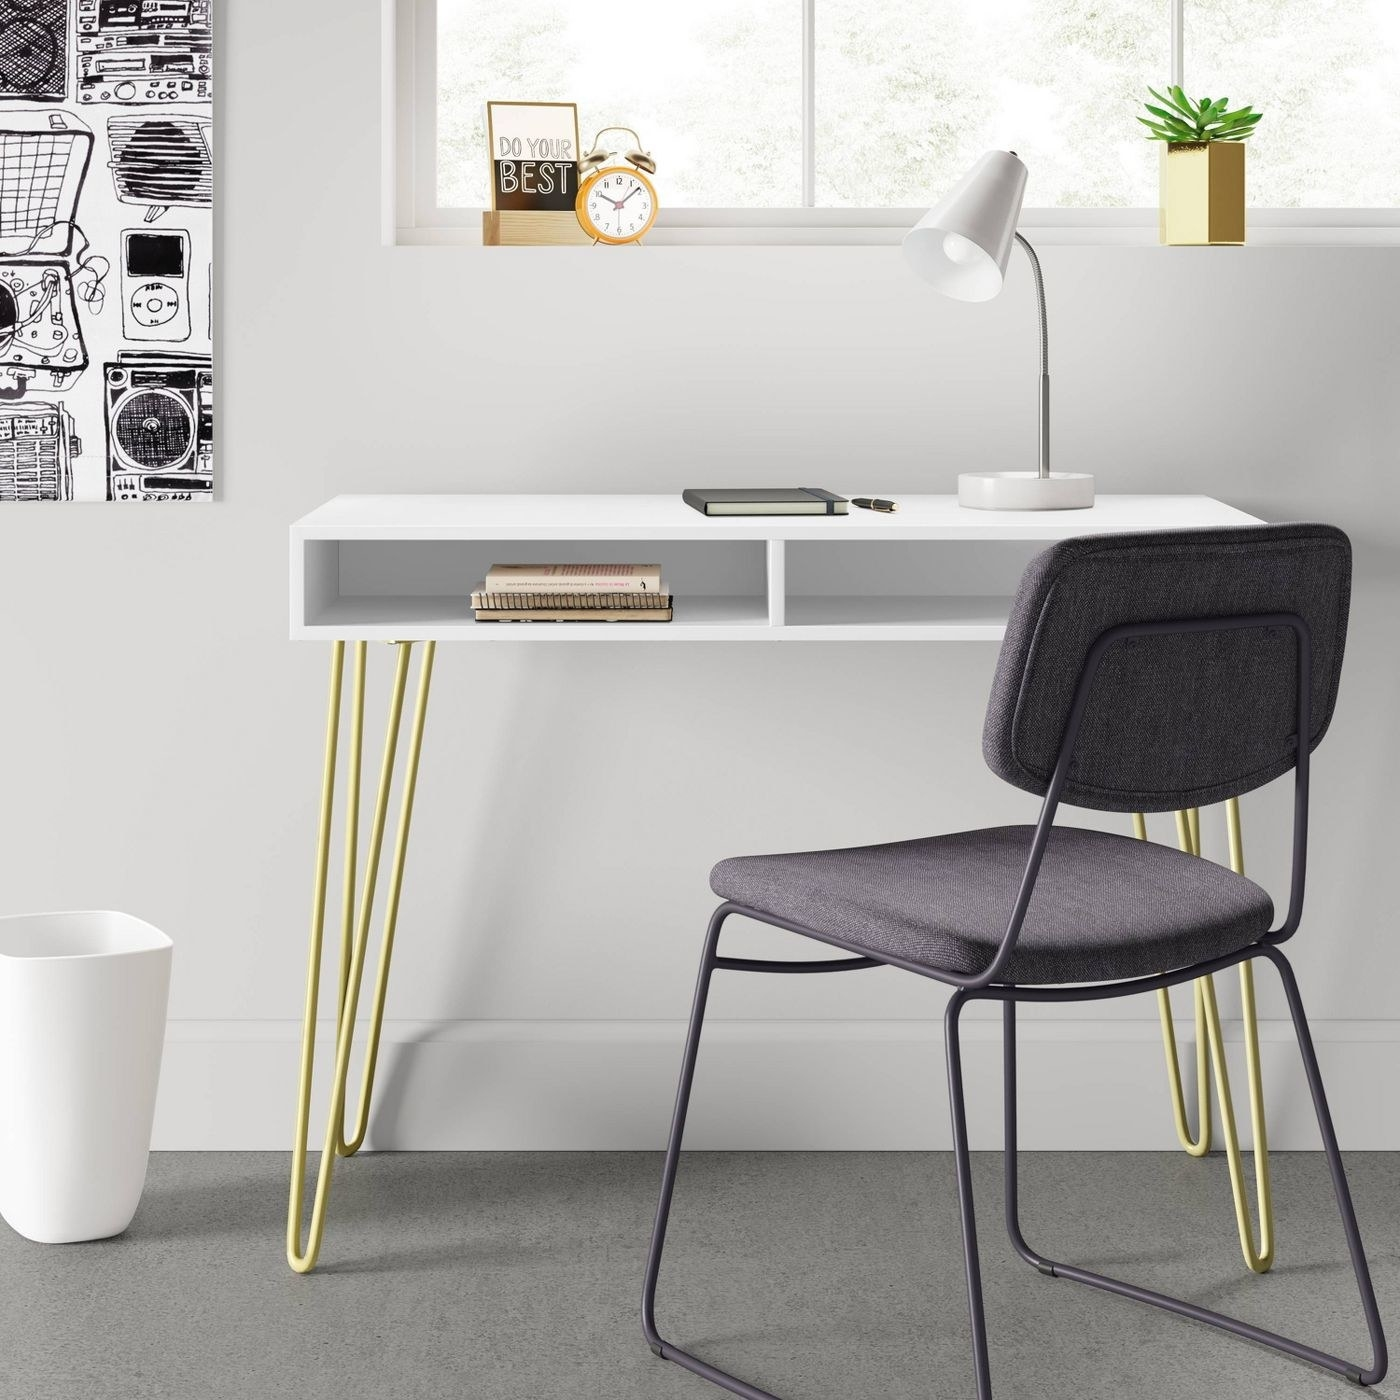 A white writing desk with gold metal hairpin legs